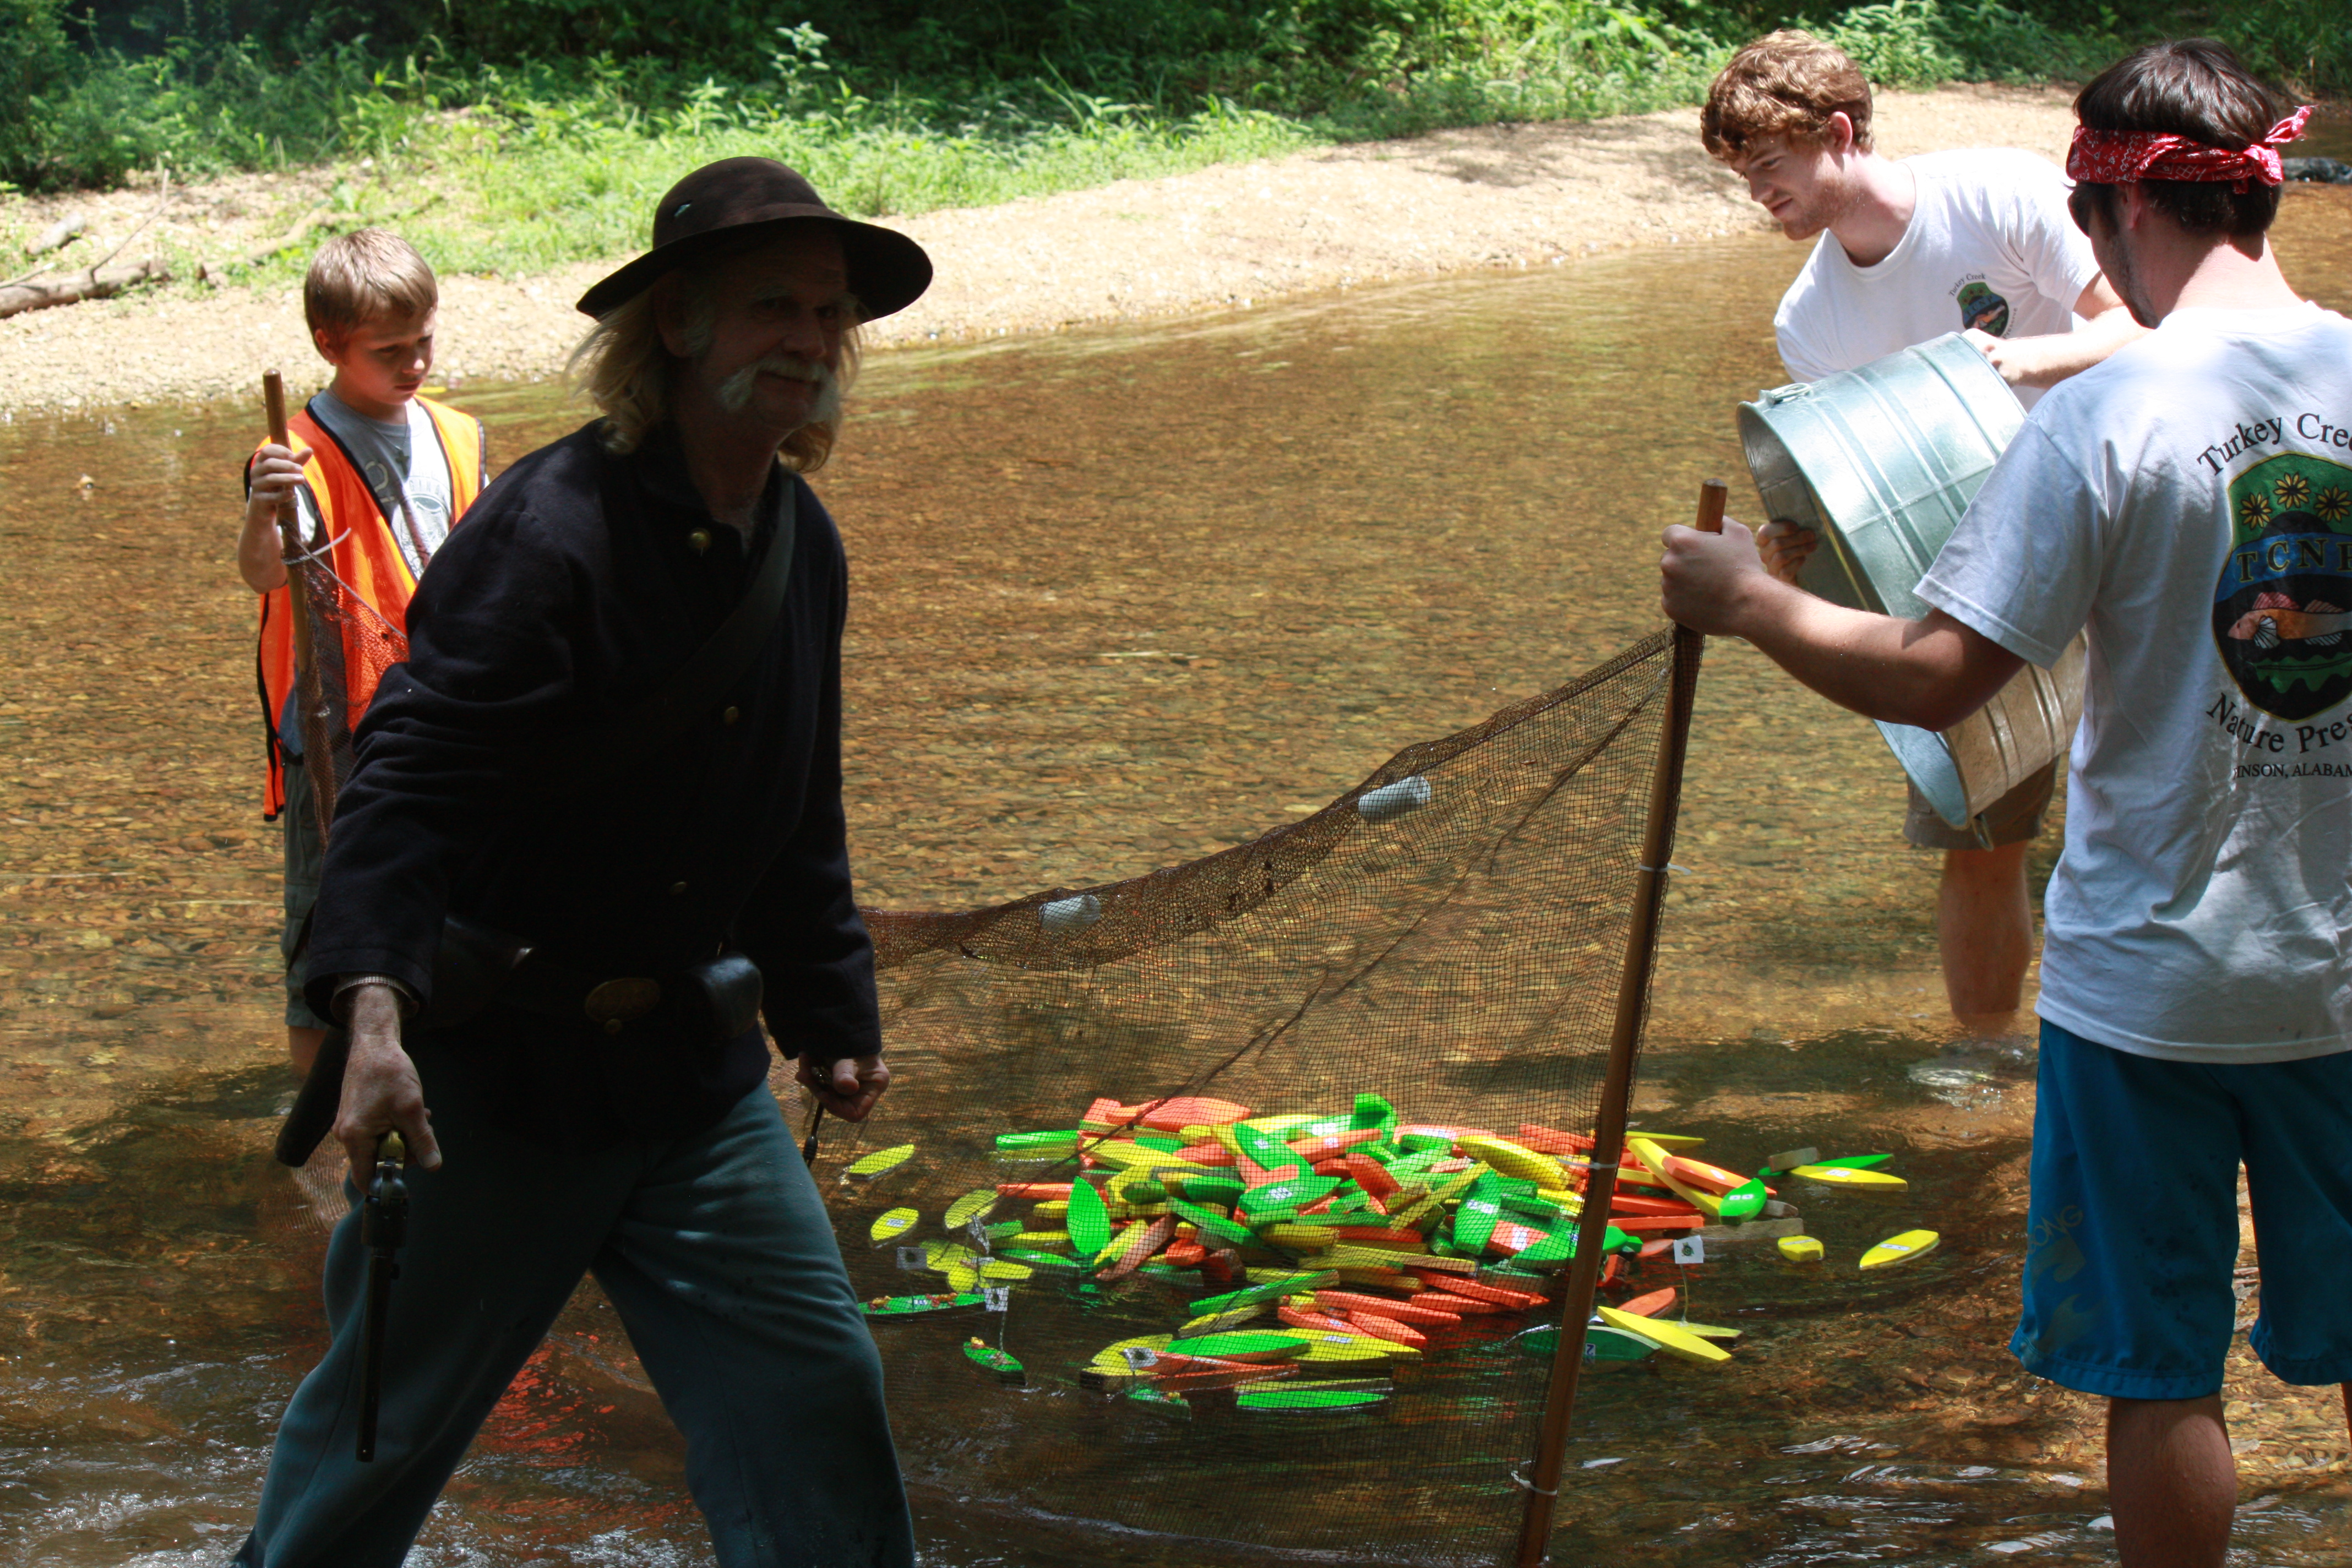 Third Annual Beat the Heat at Turkey Creek scheduled for Saturday